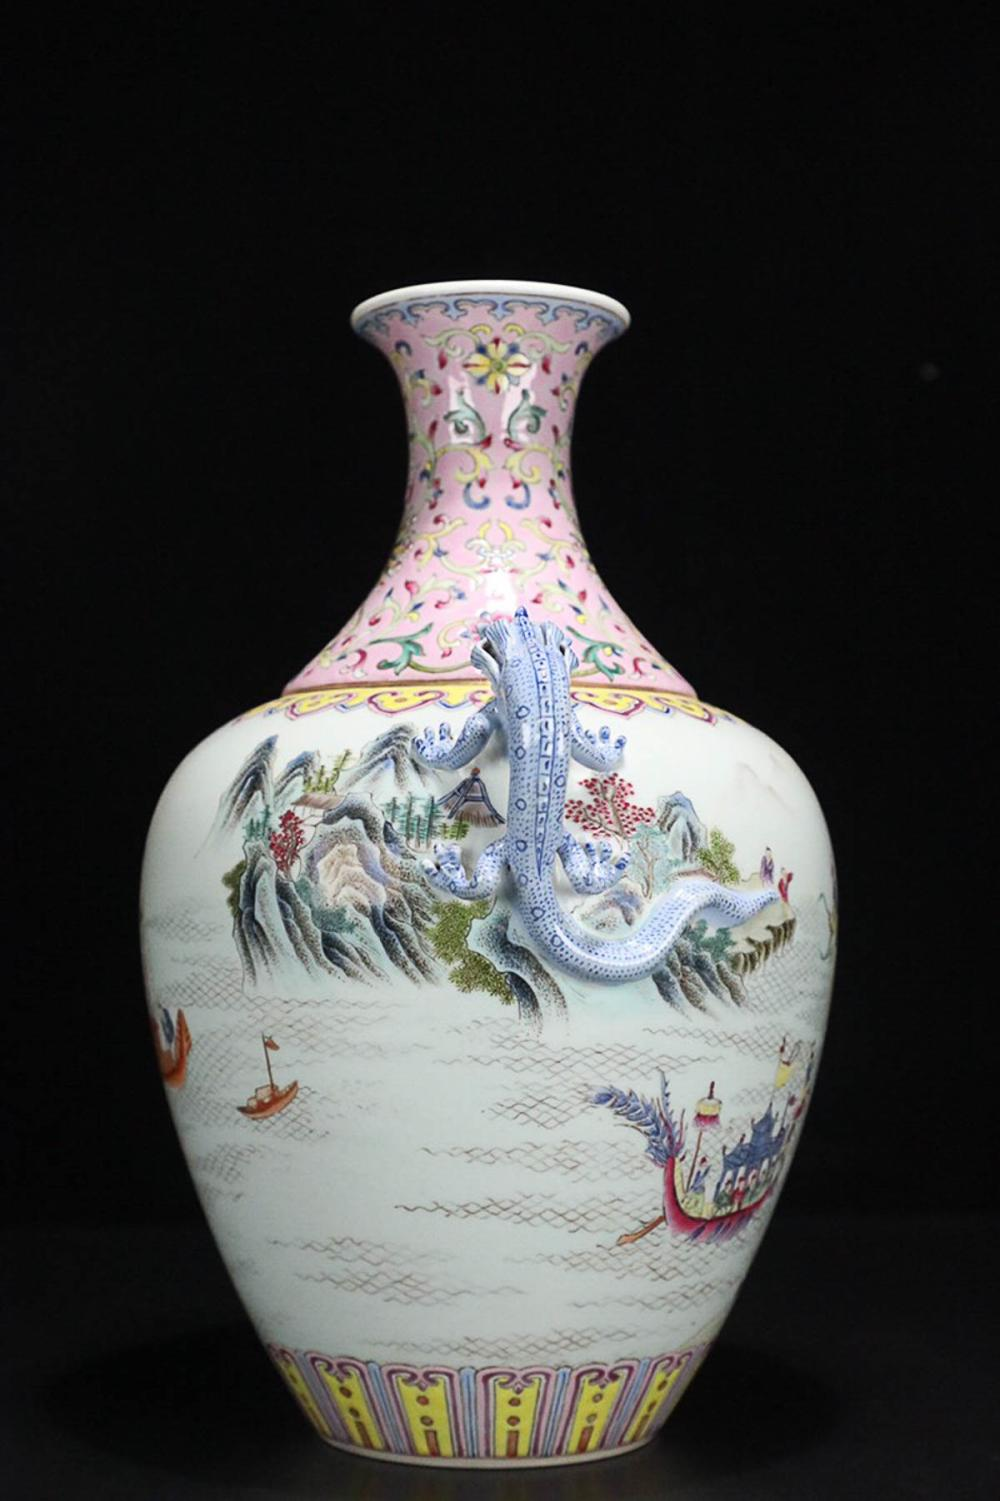 17-19TH CENTURY, A STORY DESIGN DOUBLE-EAR ENAMEL VASE, QING DYNASTY